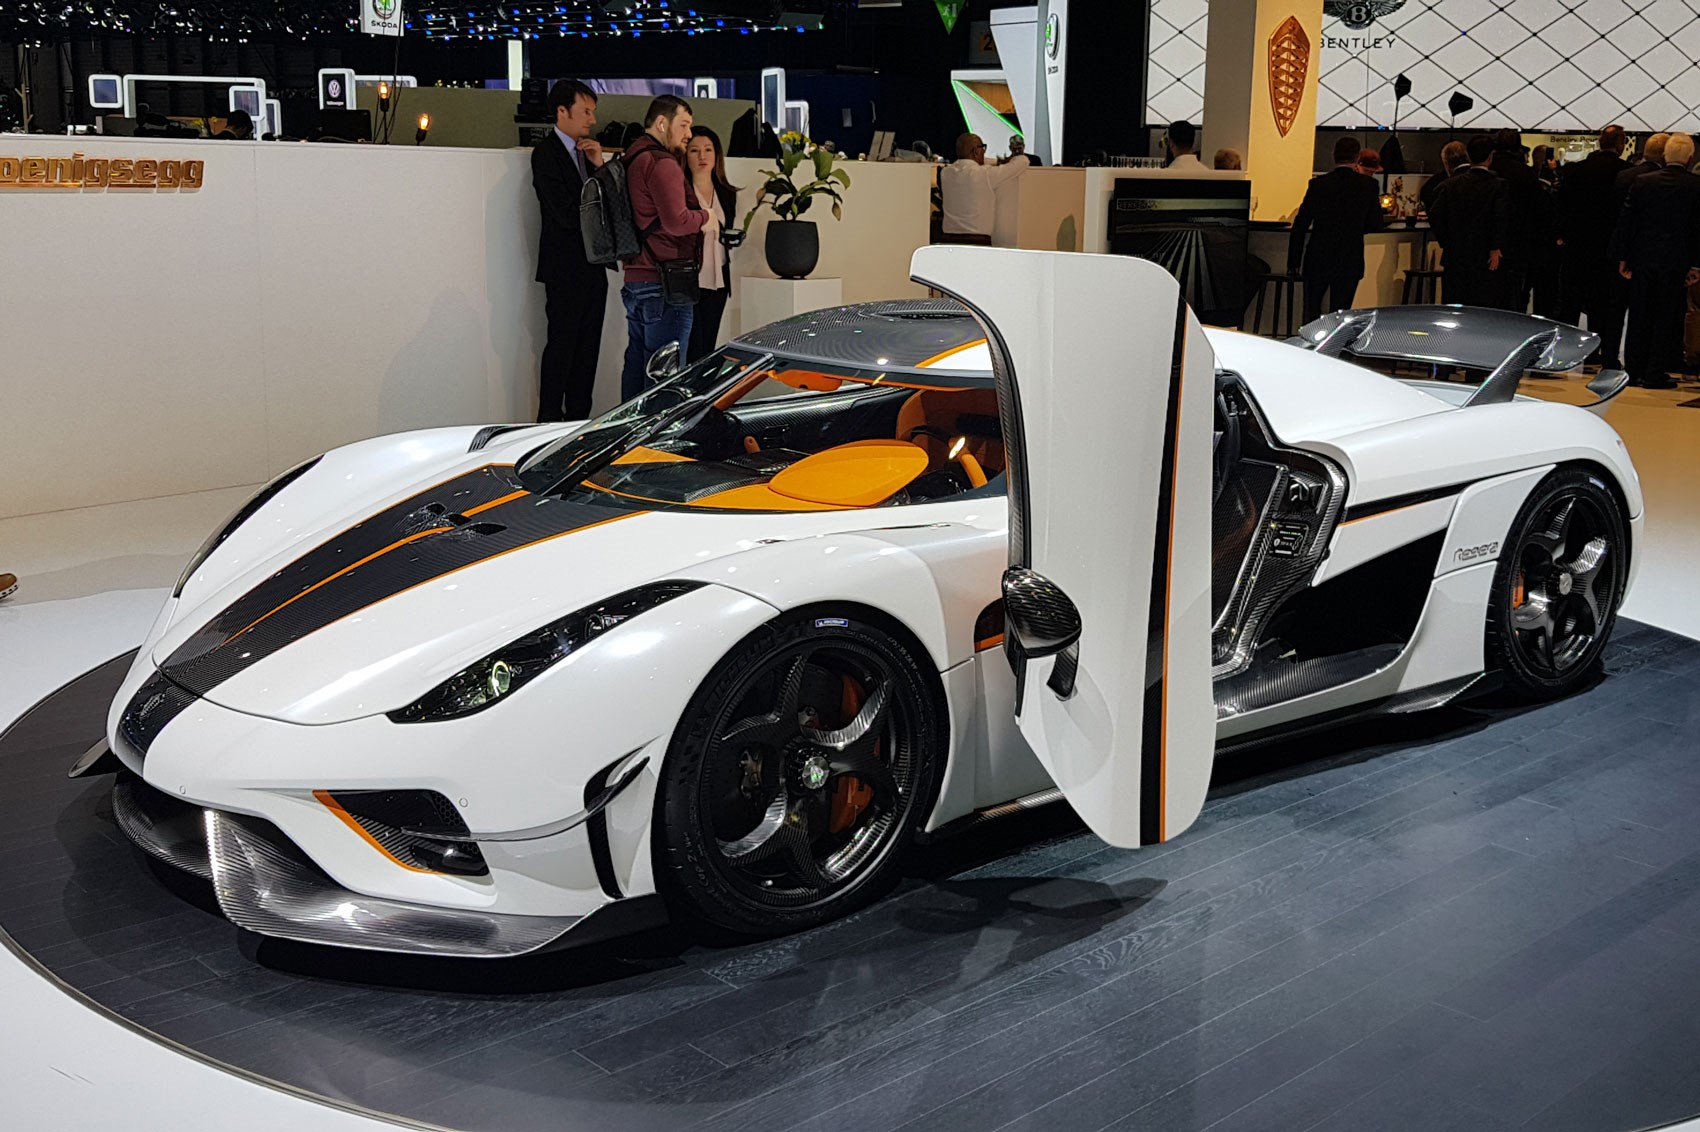 koenigsegg confirms agera rs replacement is coming in 2019 by car magazine. Black Bedroom Furniture Sets. Home Design Ideas